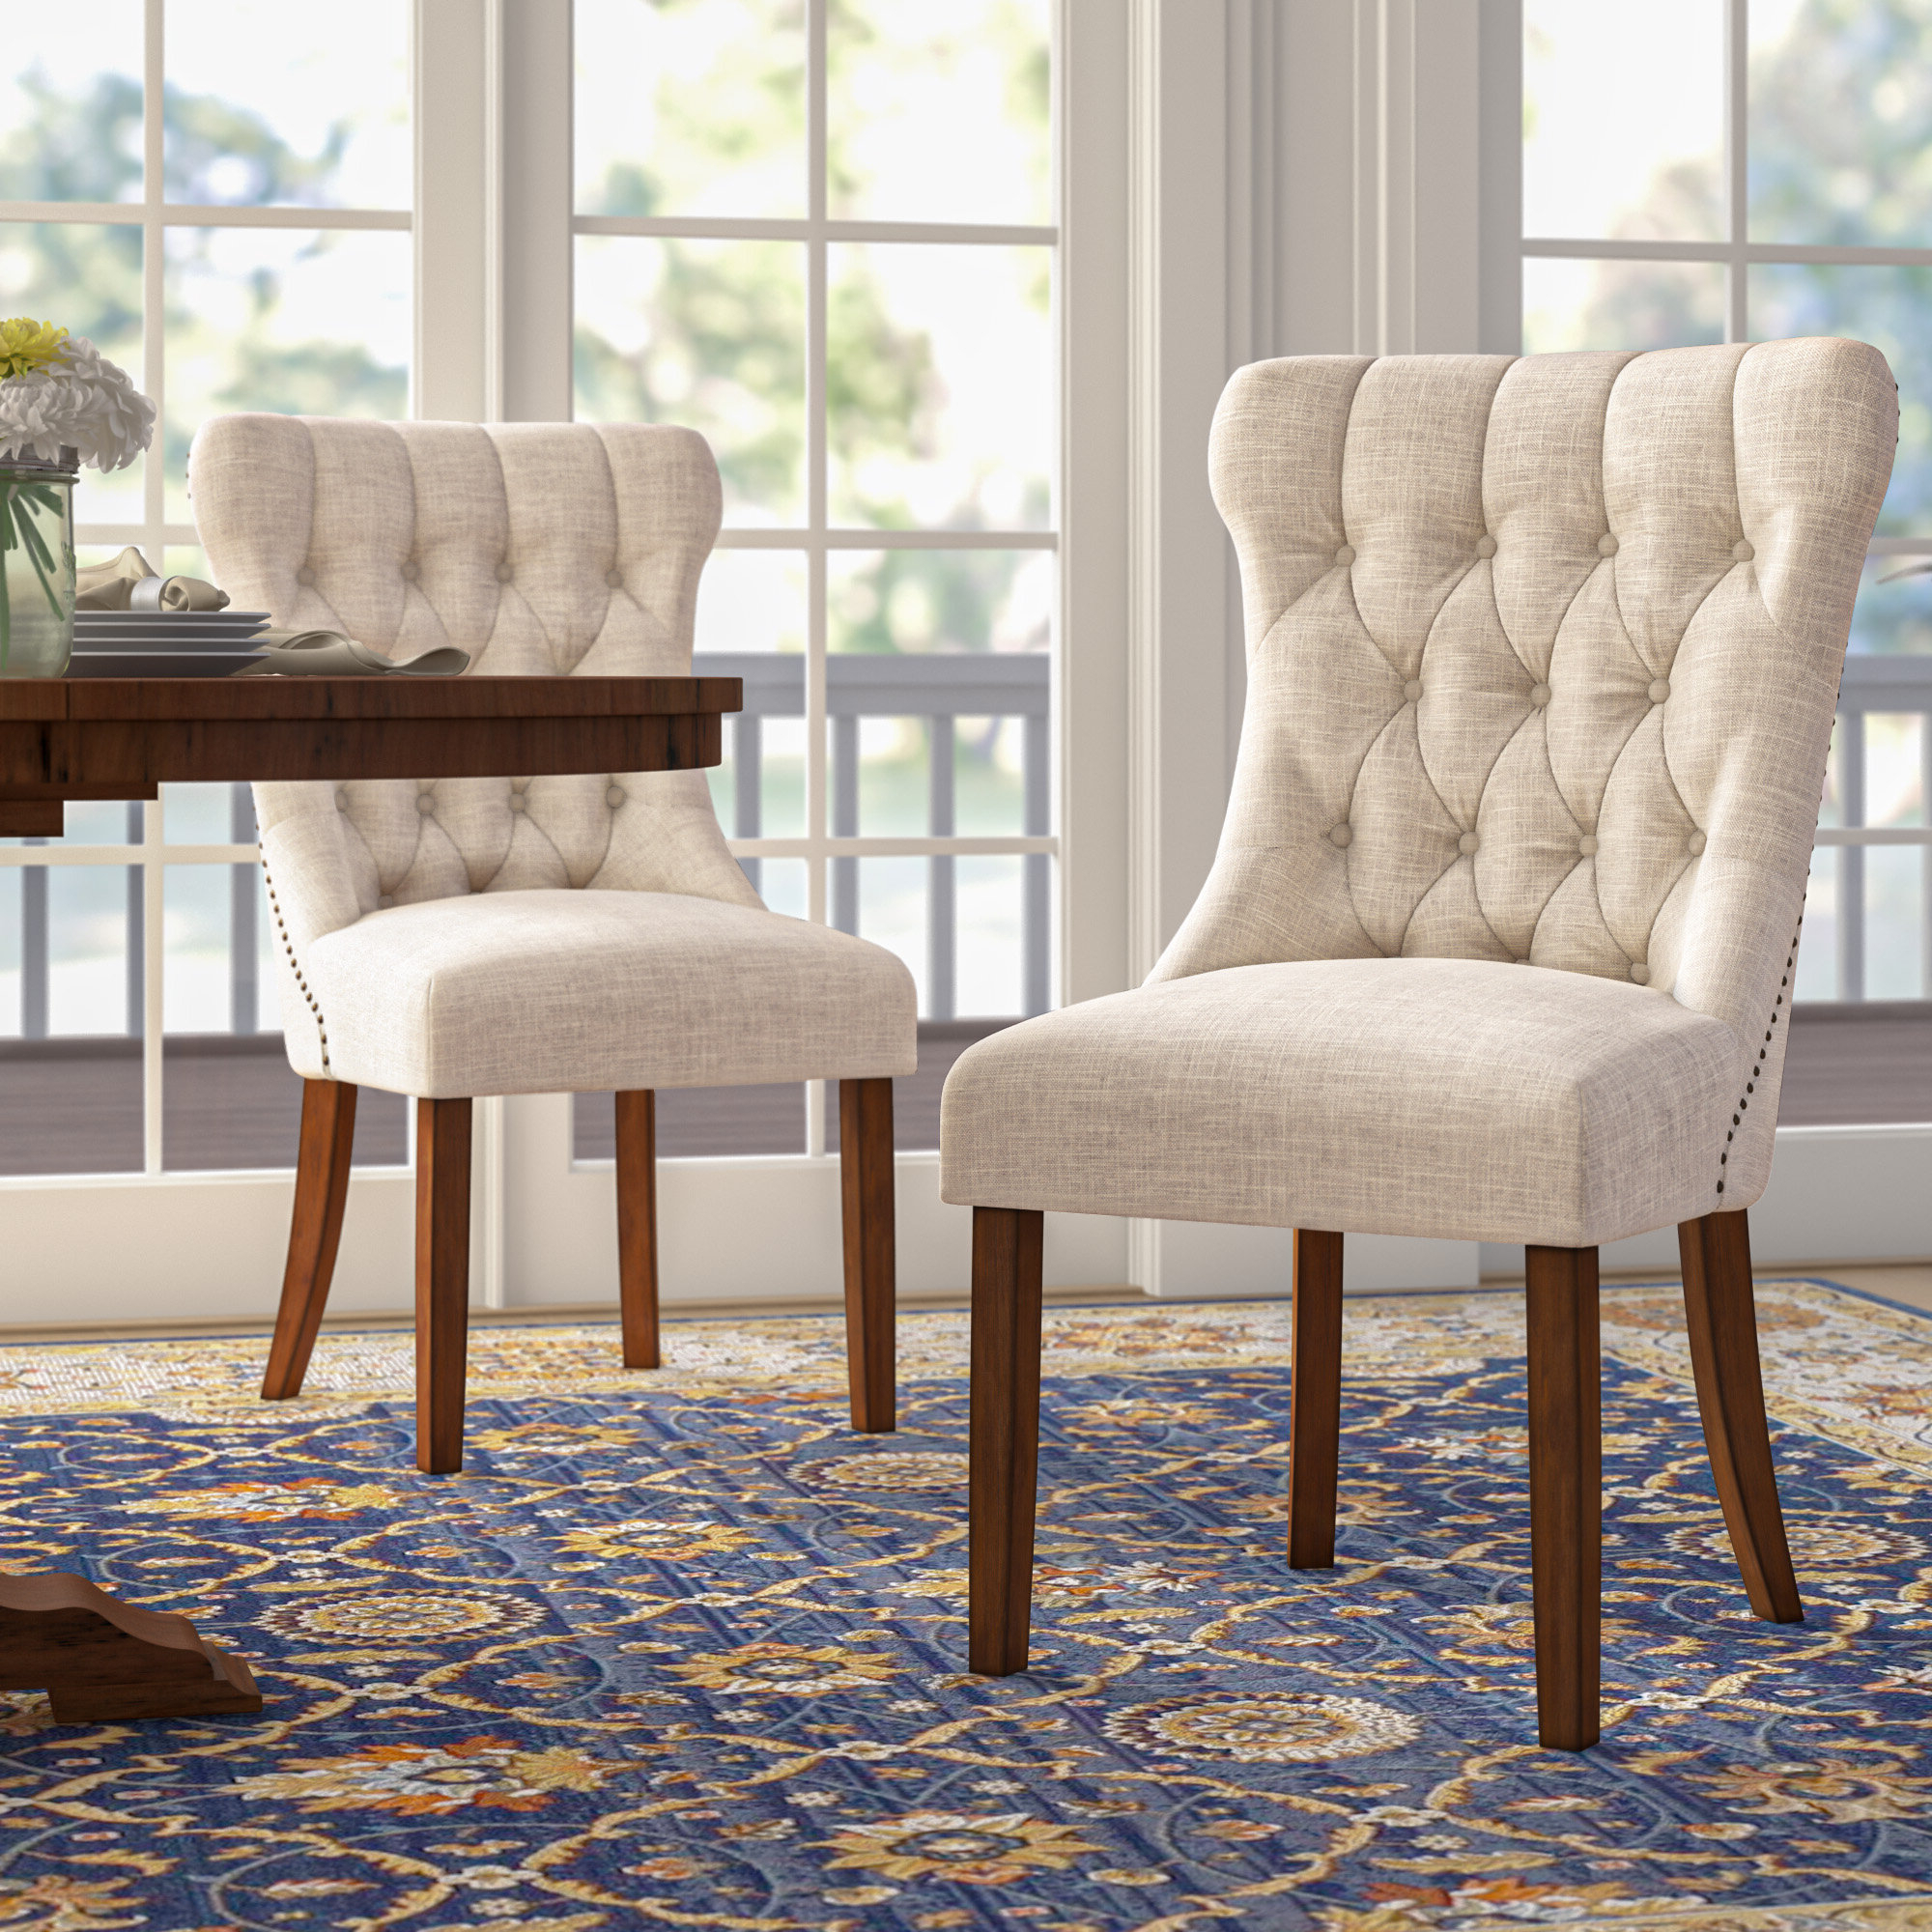 Most Recent Side Tufted Kitchen & Dining Chairs You'll Love In 2021 In Madison Avenue Tufted Cotton Upholstered Dining Chairs (set Of 2) (View 3 of 20)